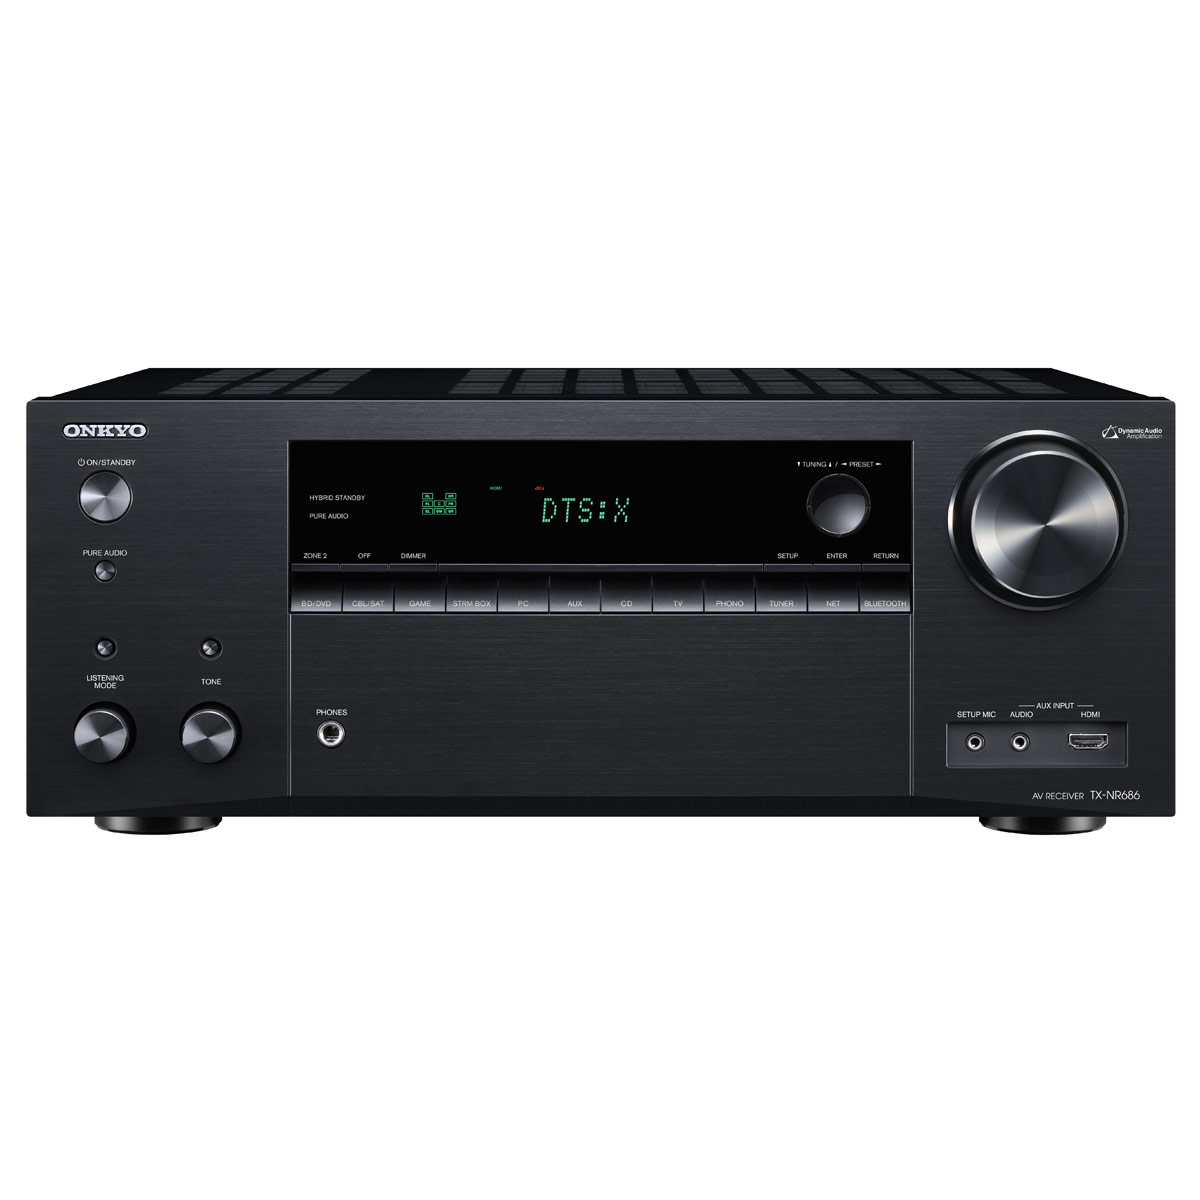 Ampli home cinéma Onkyo TX-NR686E Noir Ampli-tuner Home Cinéma 7.2 - 165 Watts - THX - Wi-Fi/Bluetooth - Dolby Atmos - DTS:X - Multiroom - 4K/60p - HDCP 2.2 - AirPlay/Chromecast - Hi-Res Audio - 7 entrées HDMI